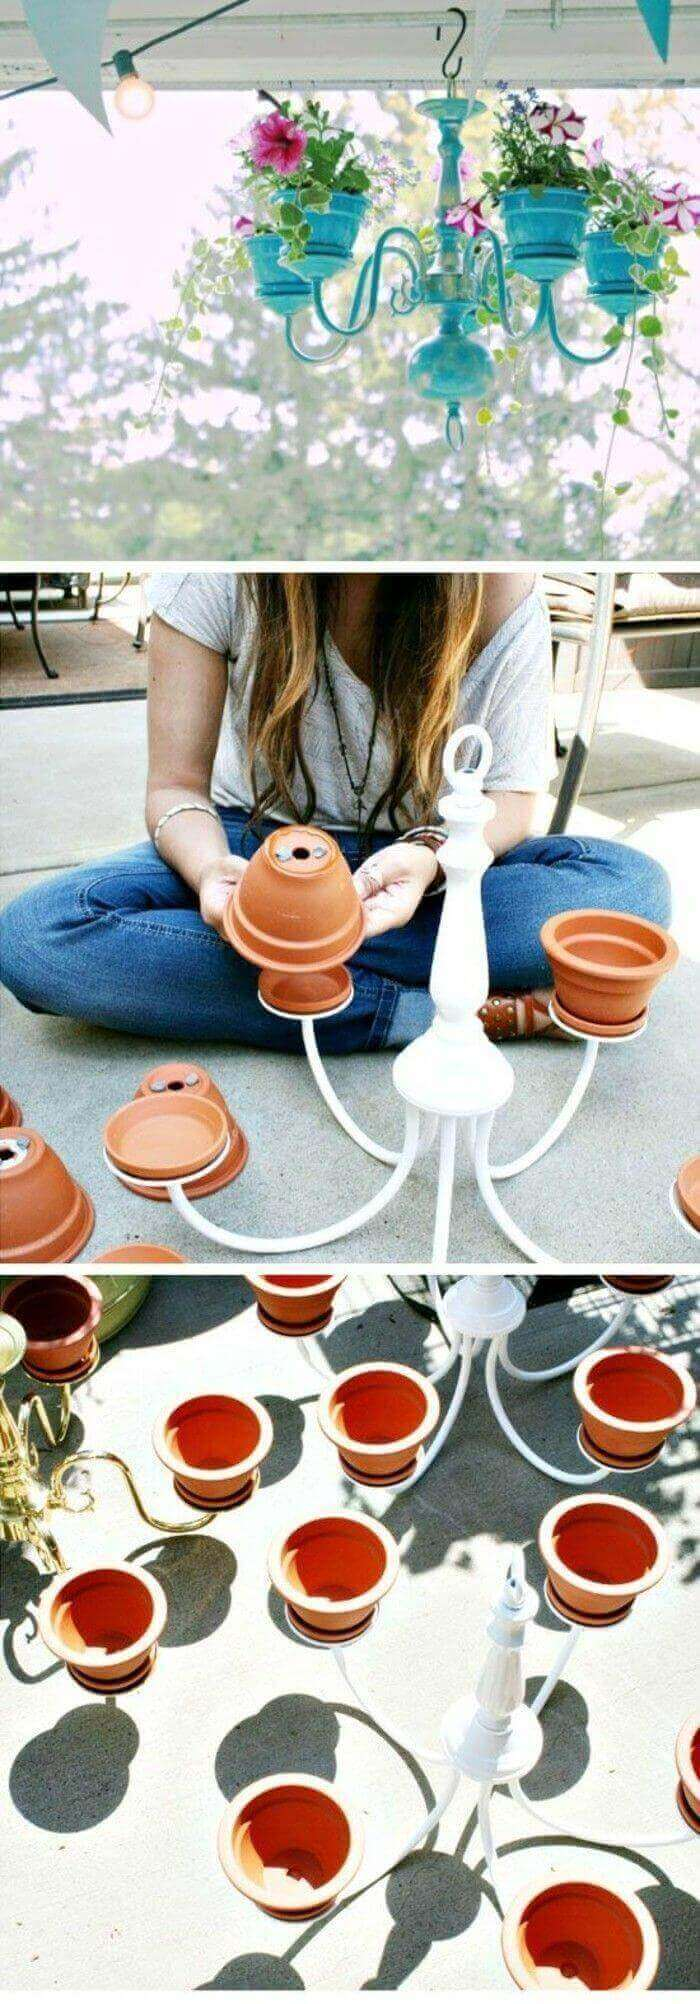 DIY Clay Flower Pot Craft with Chandeliers